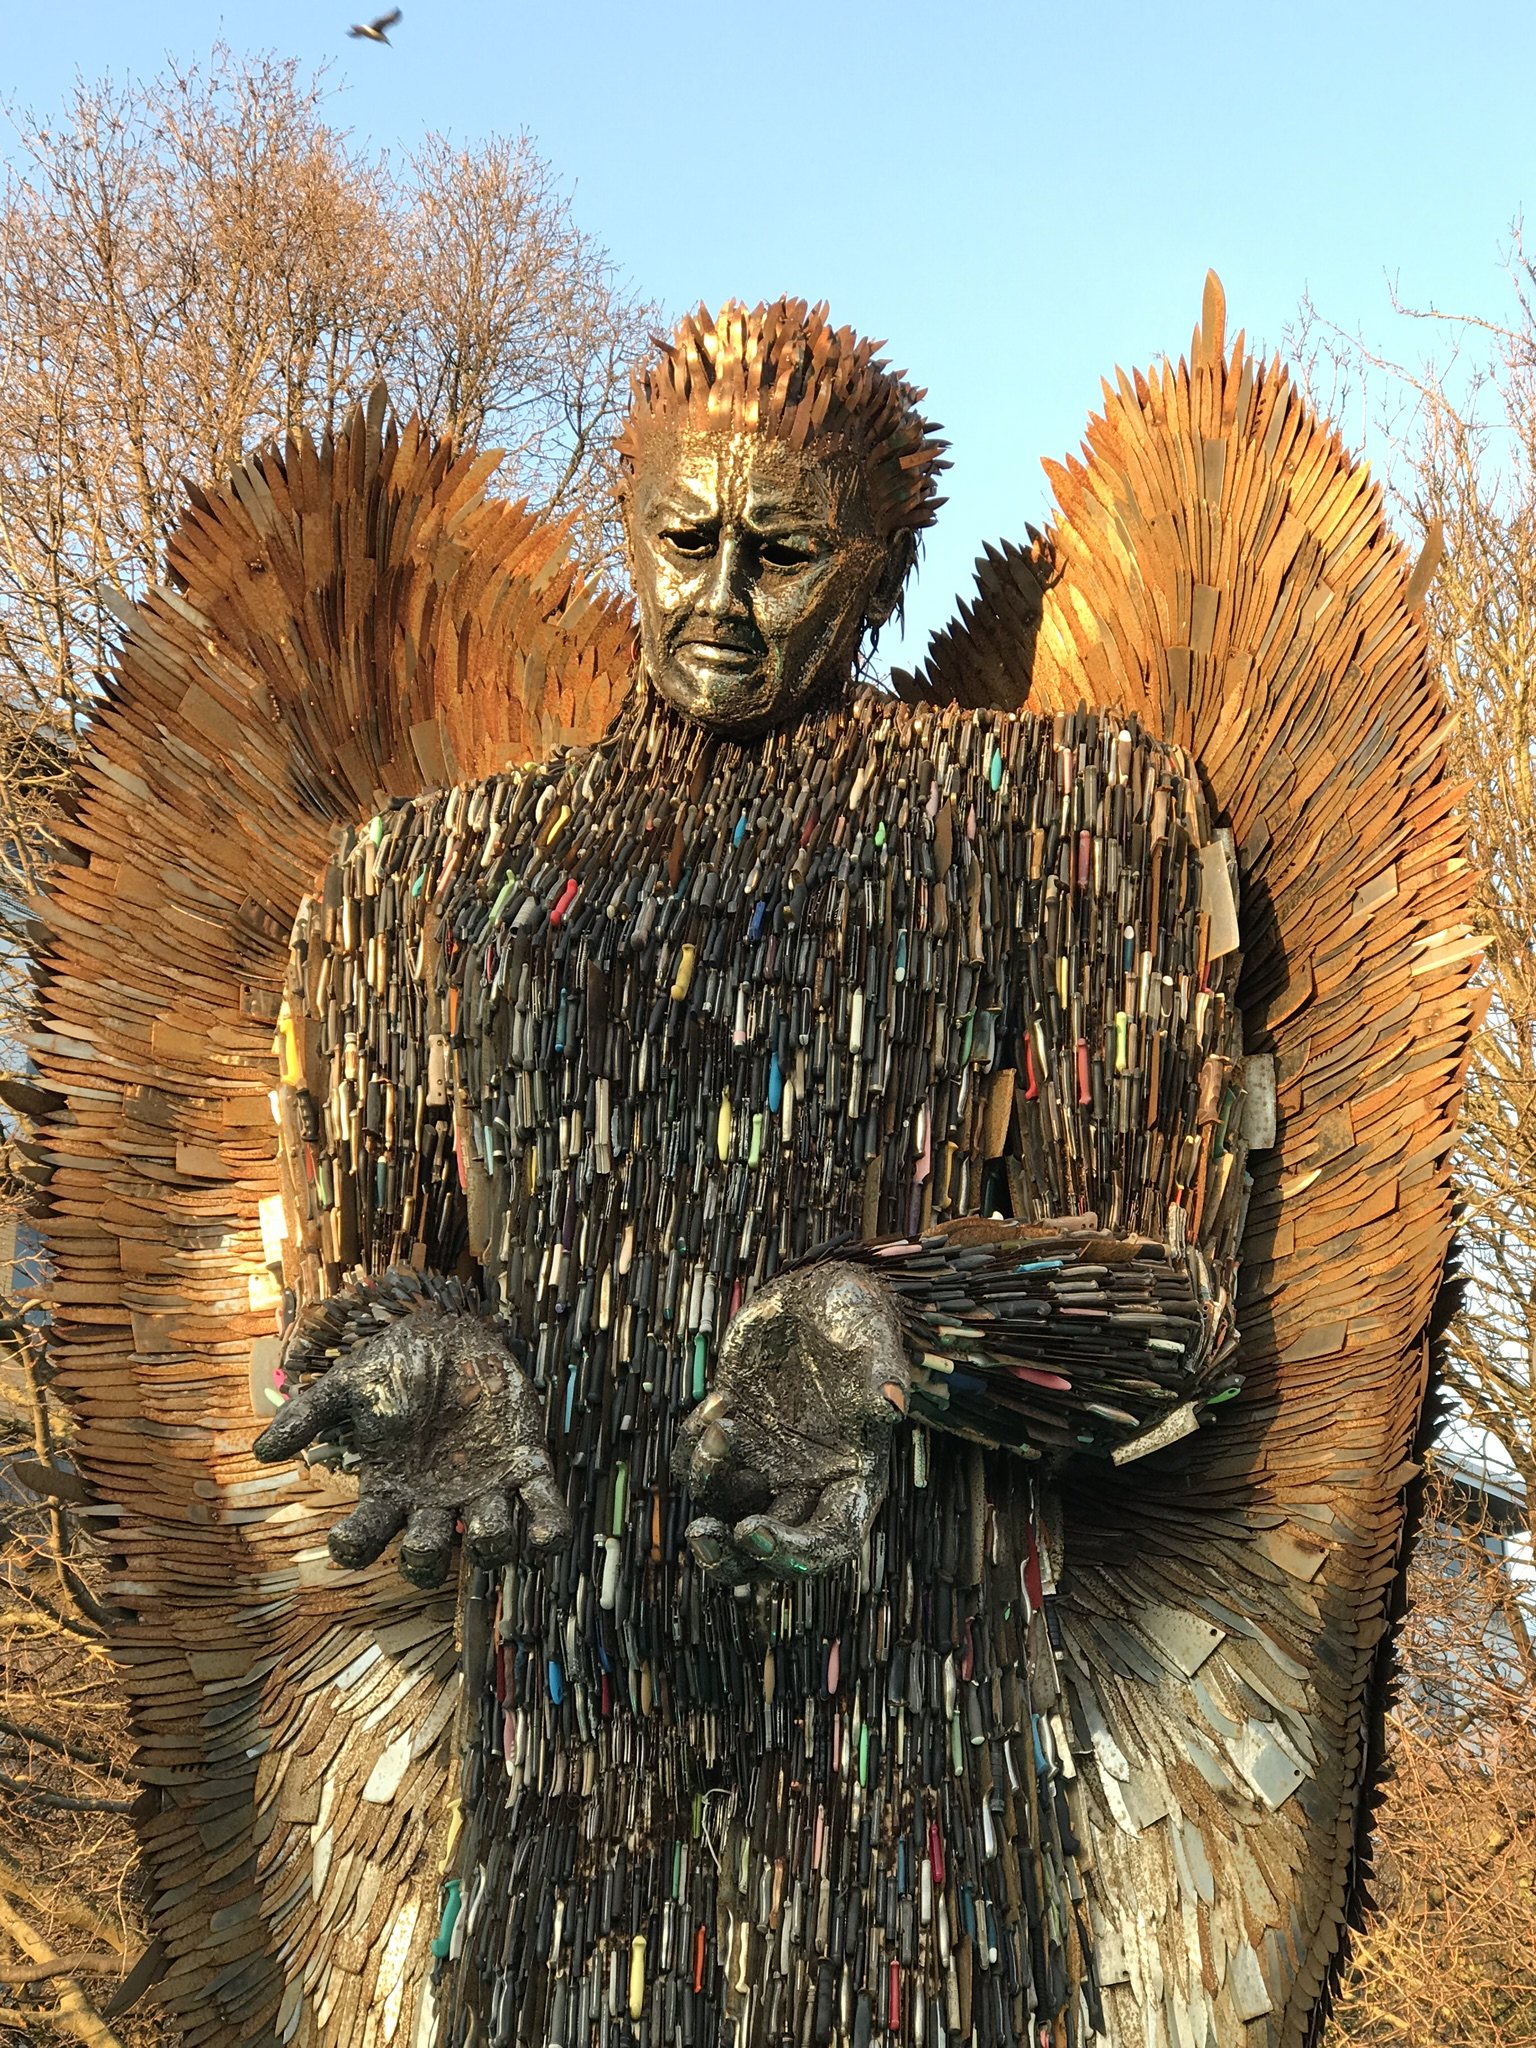 Knife Angel sculpture in Hull